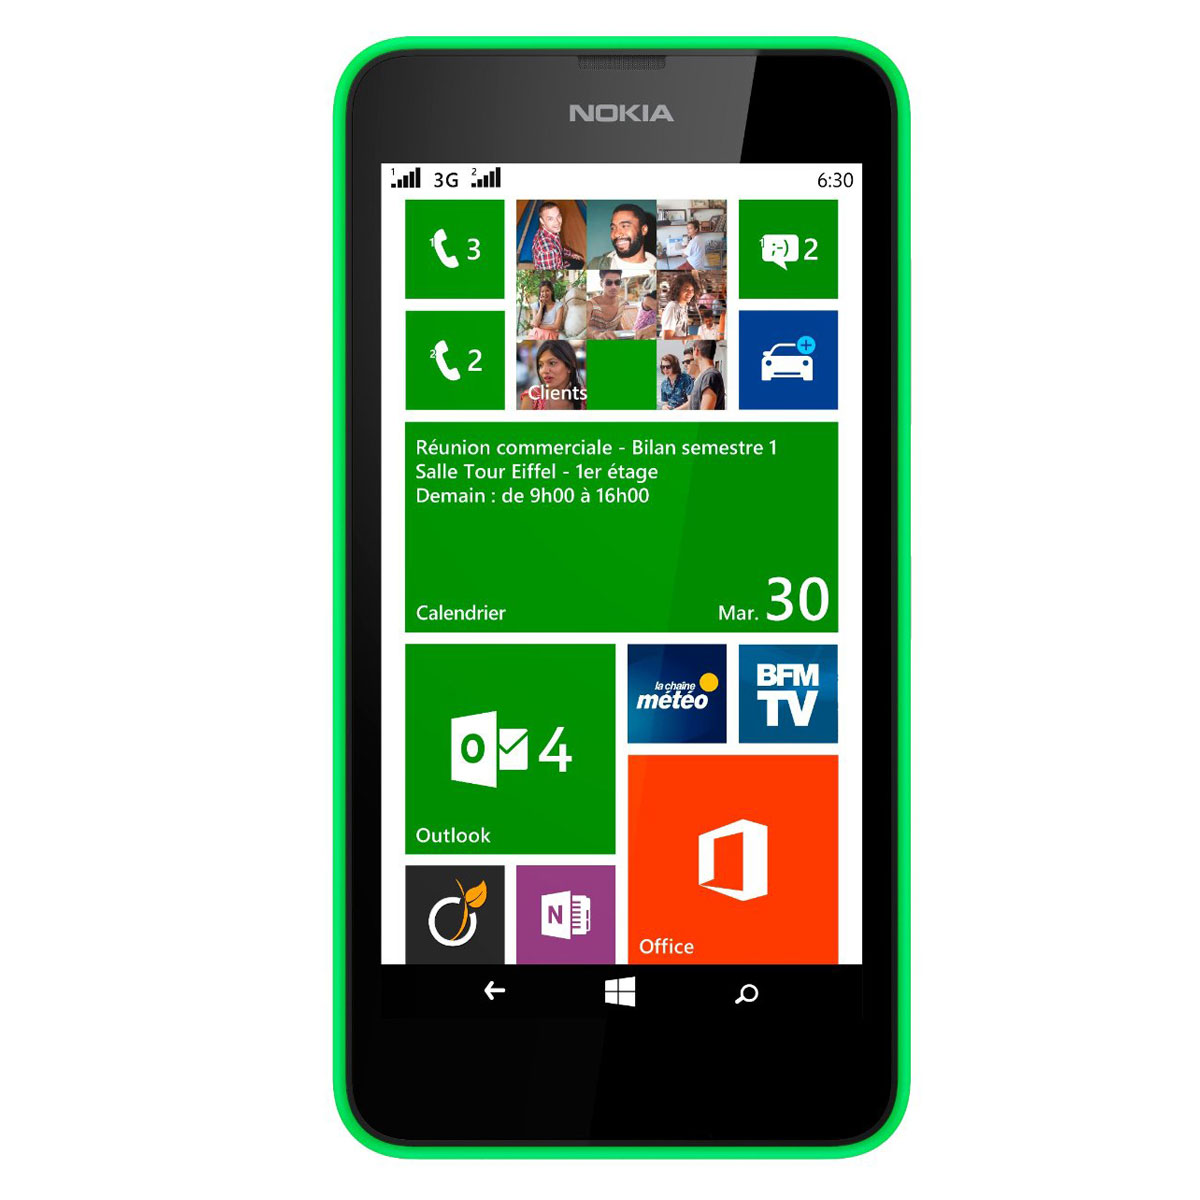 nokia lumia 630 dual sim vert mobile smartphone nokia sur. Black Bedroom Furniture Sets. Home Design Ideas